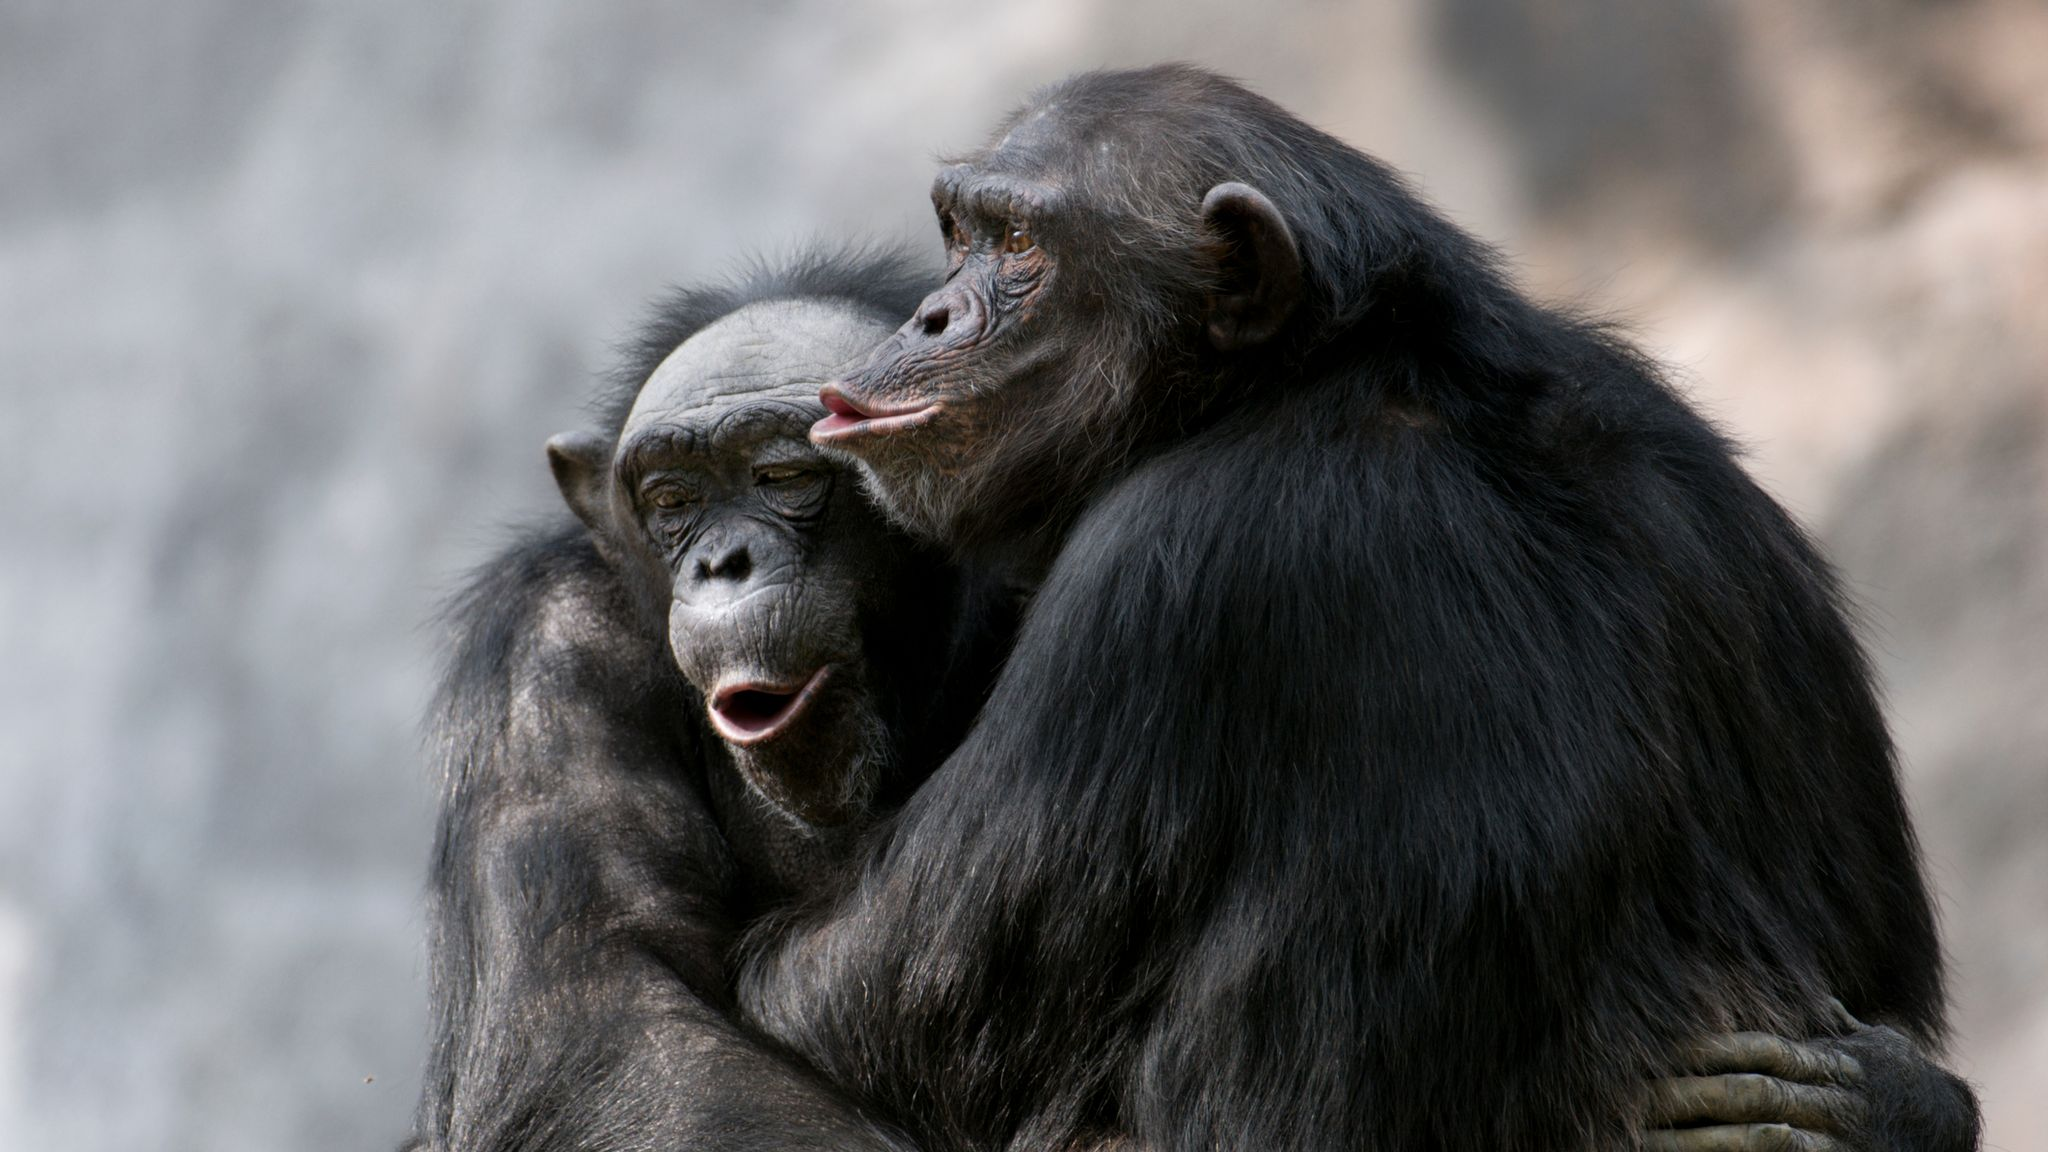 'Dancing chimps' like to clap along and tap their toes to music